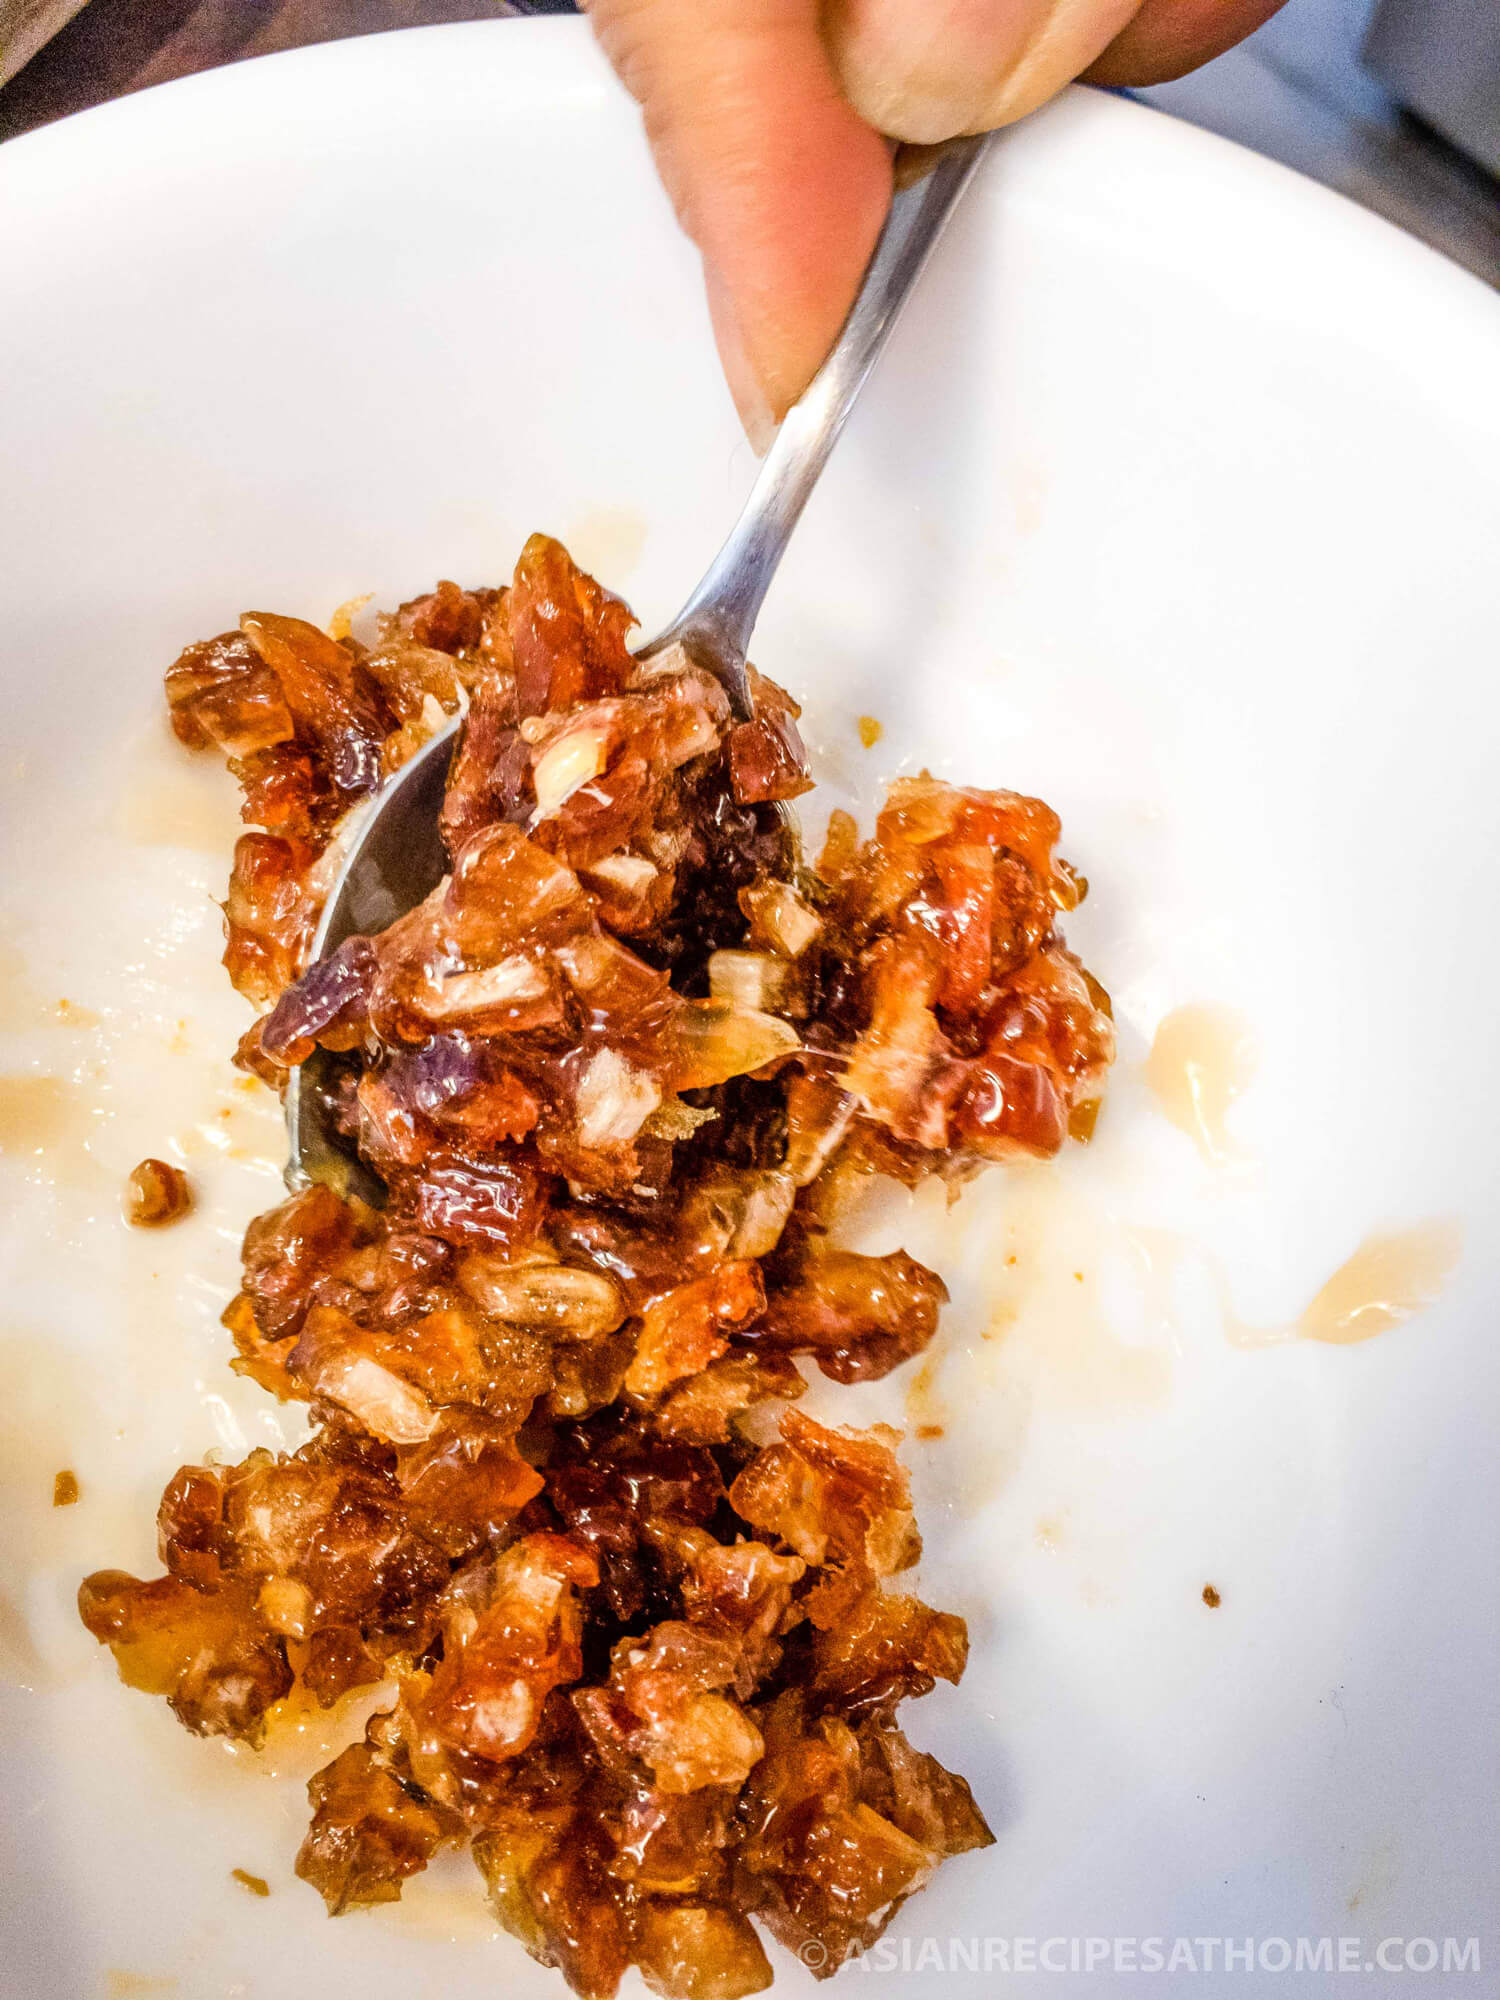 Mix the dates with honey for the sweet rice cakes filling.